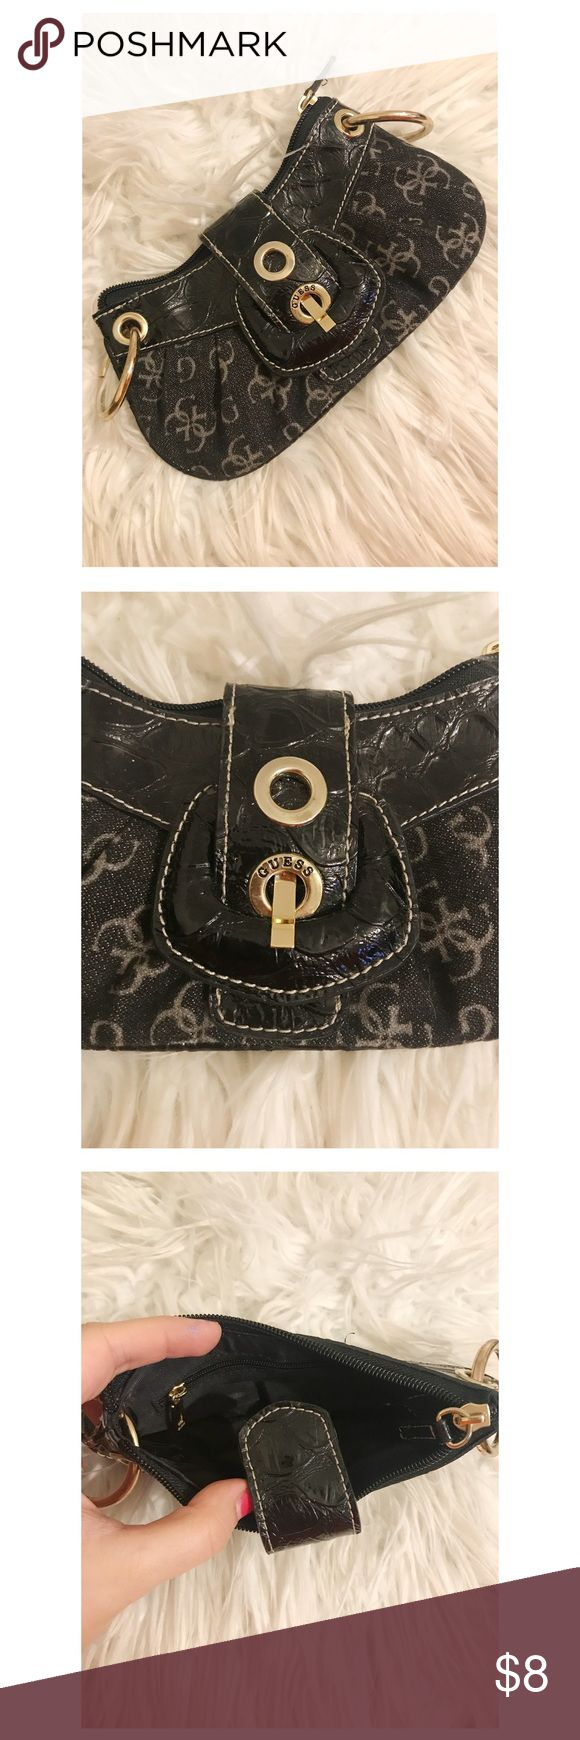 Small Black Guess Clutch Bag Small Guess clutch. Can be used alone or as a small wallet/change purse. In great condition!  *WILL OFFER AT LEAST 15% OFF OF BUNDLES* Guess Bags Clutches & Wristlets